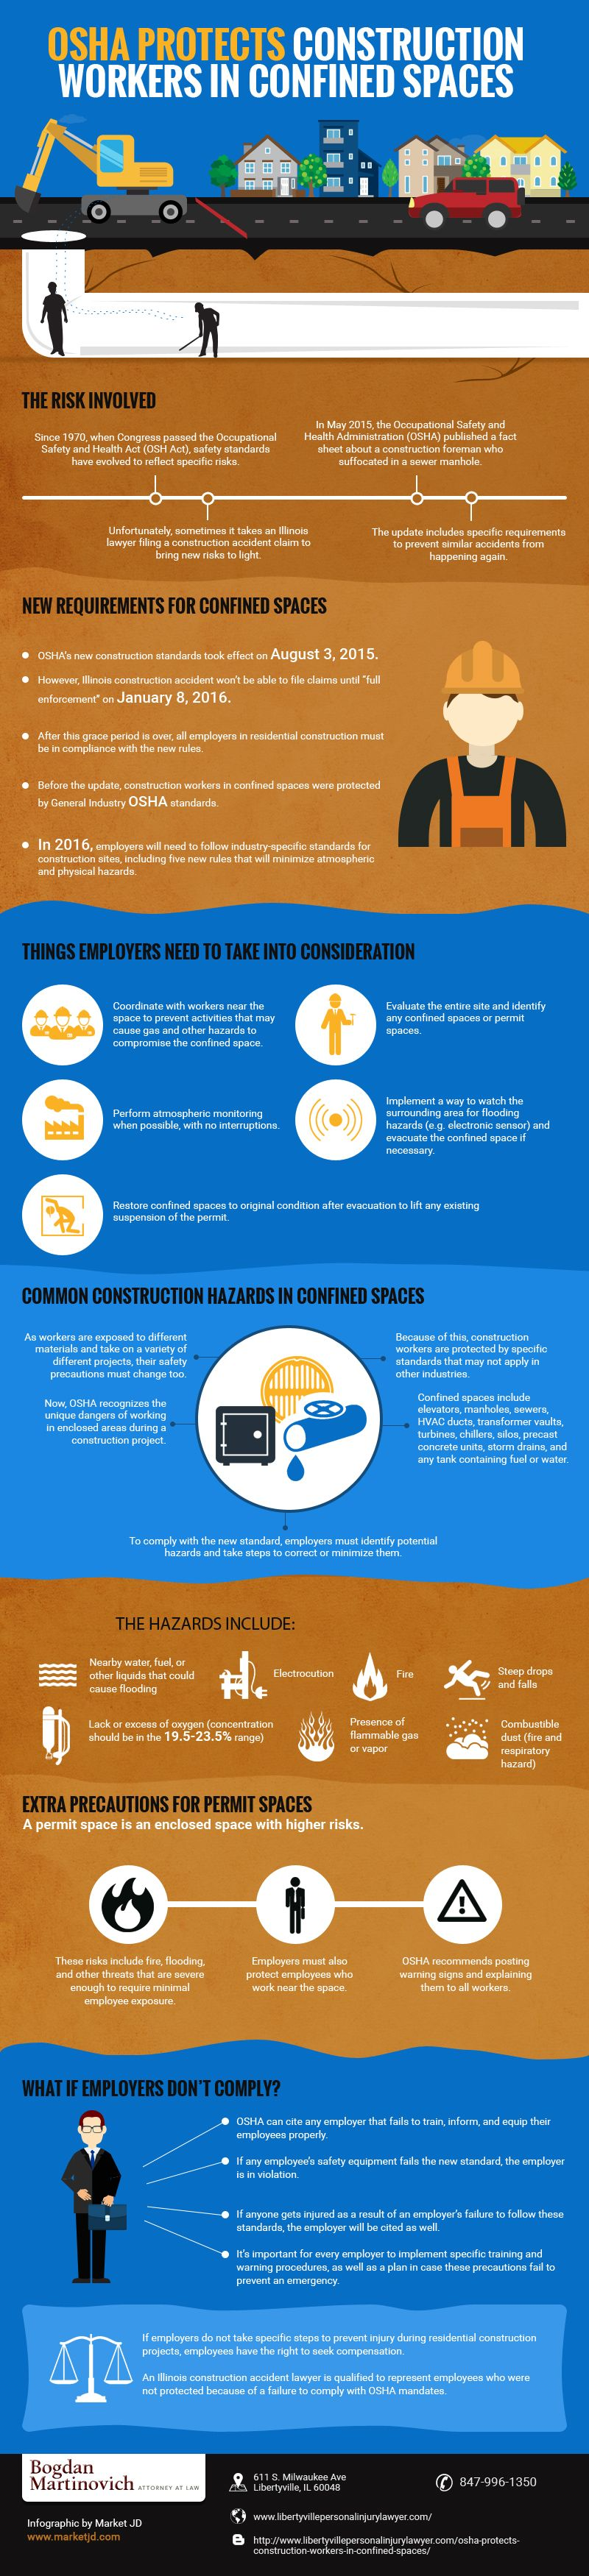 Construction Workers in Confined Spaces Occupational